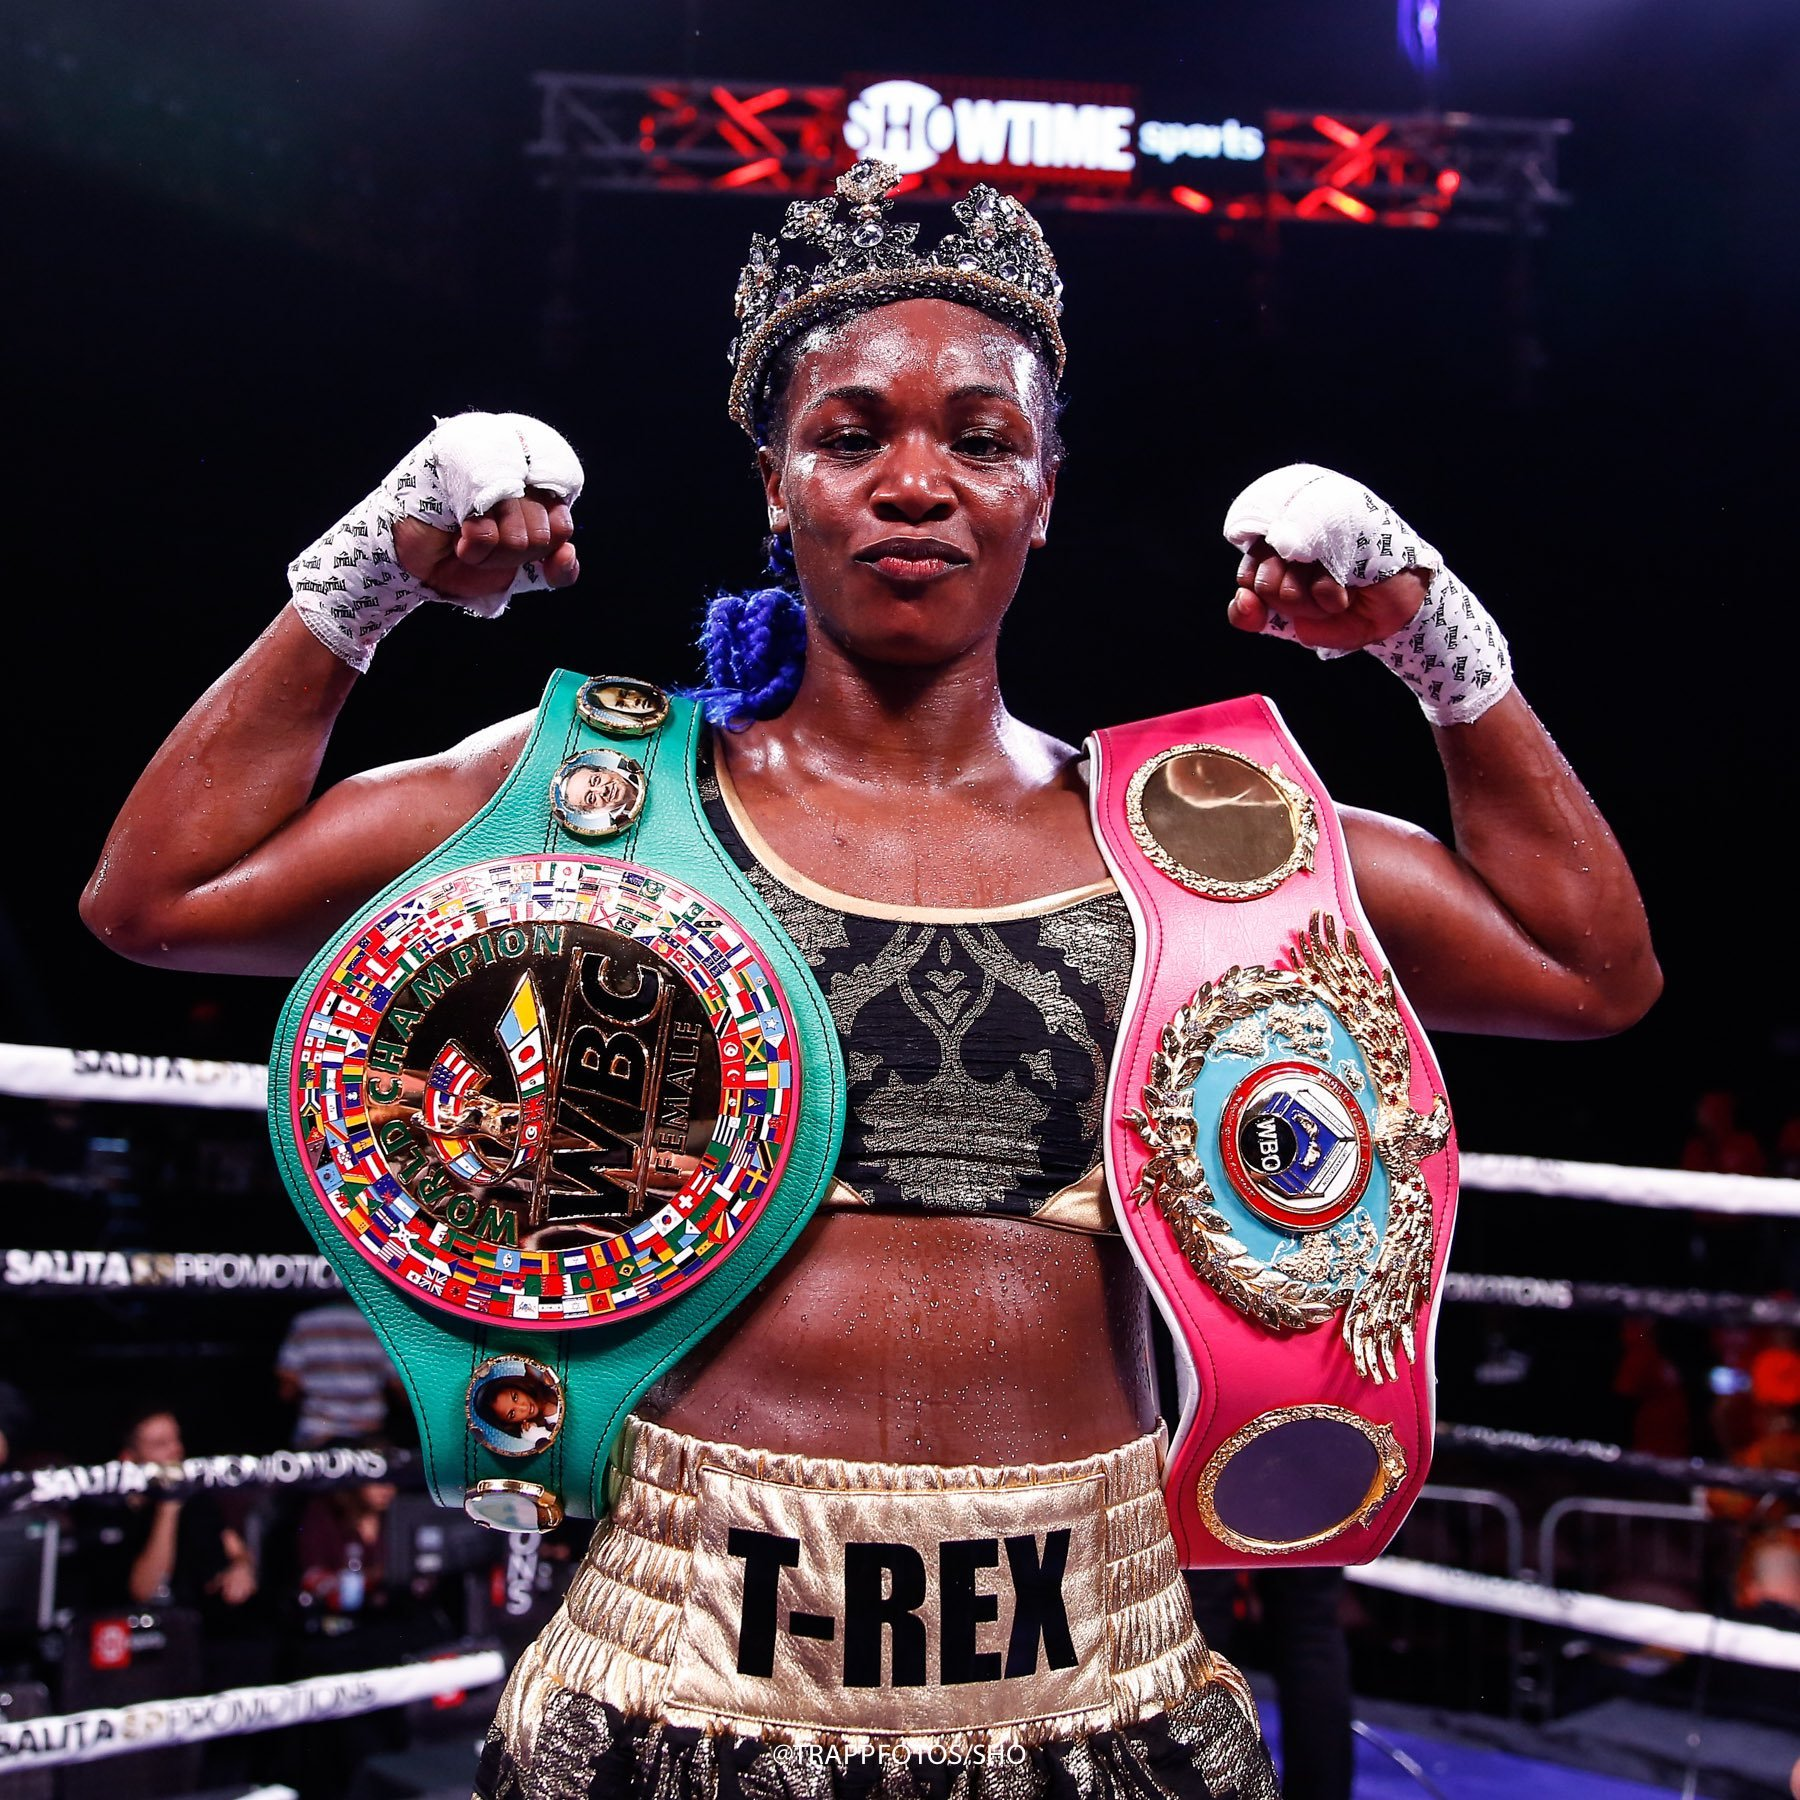 Claressa Shields hits back at Laila Ali by saying 'she never beat any real fighters' as talk turns to a potential super fight between them